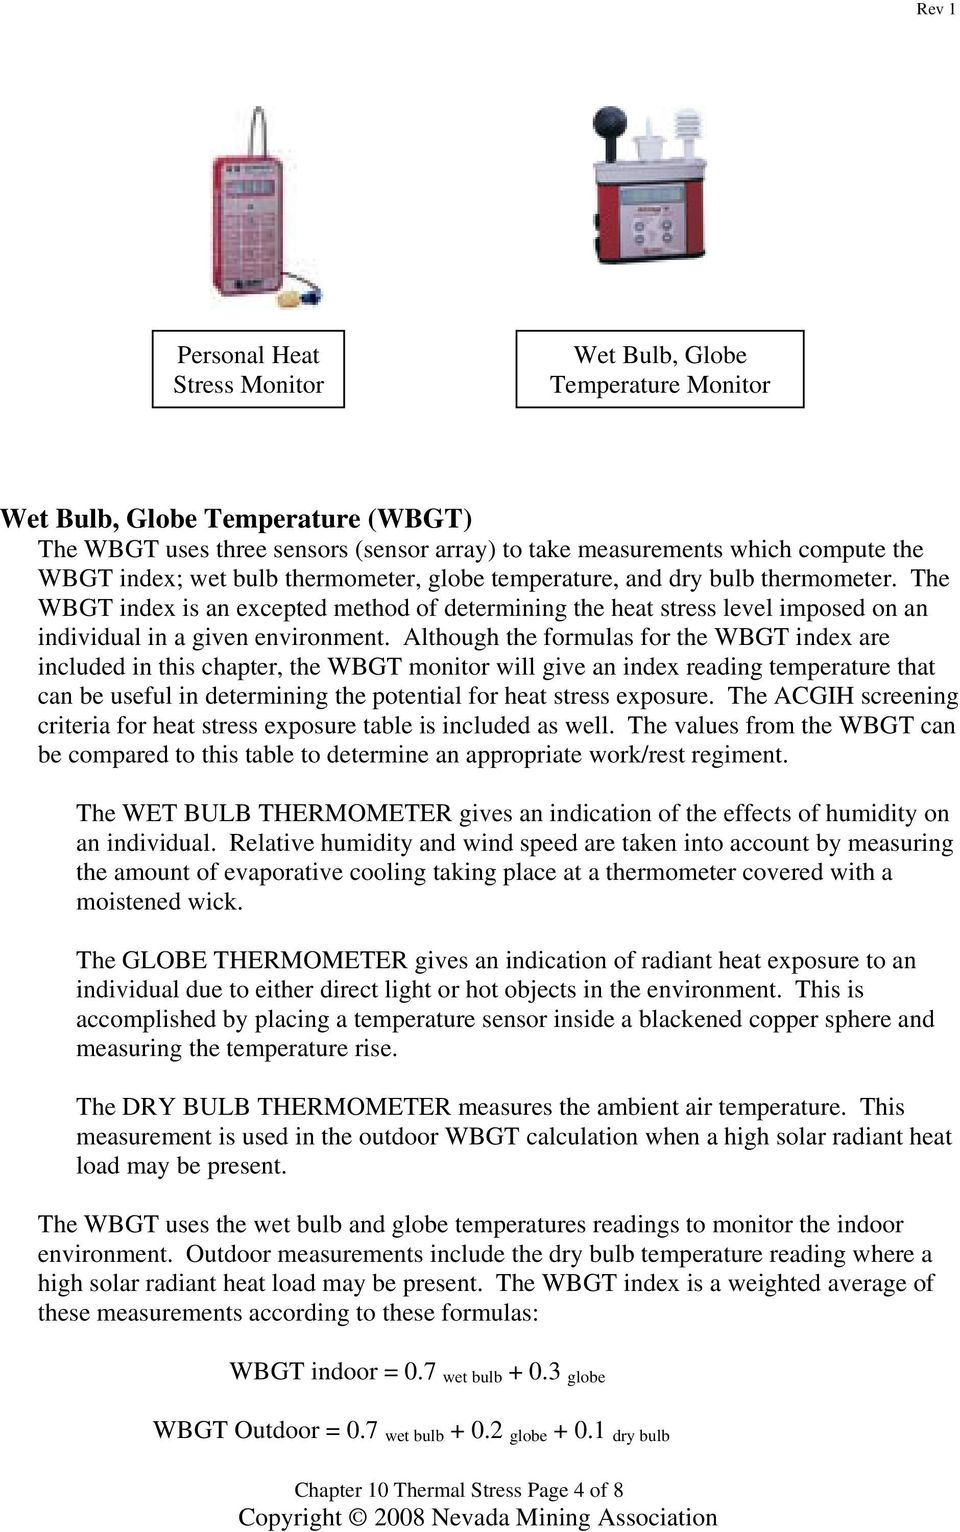 Although the formulas for the WBGT index are included in this chapter, the WBGT monitor will give an index reading temperature that can be useful in determining the potential for heat stress exposure.